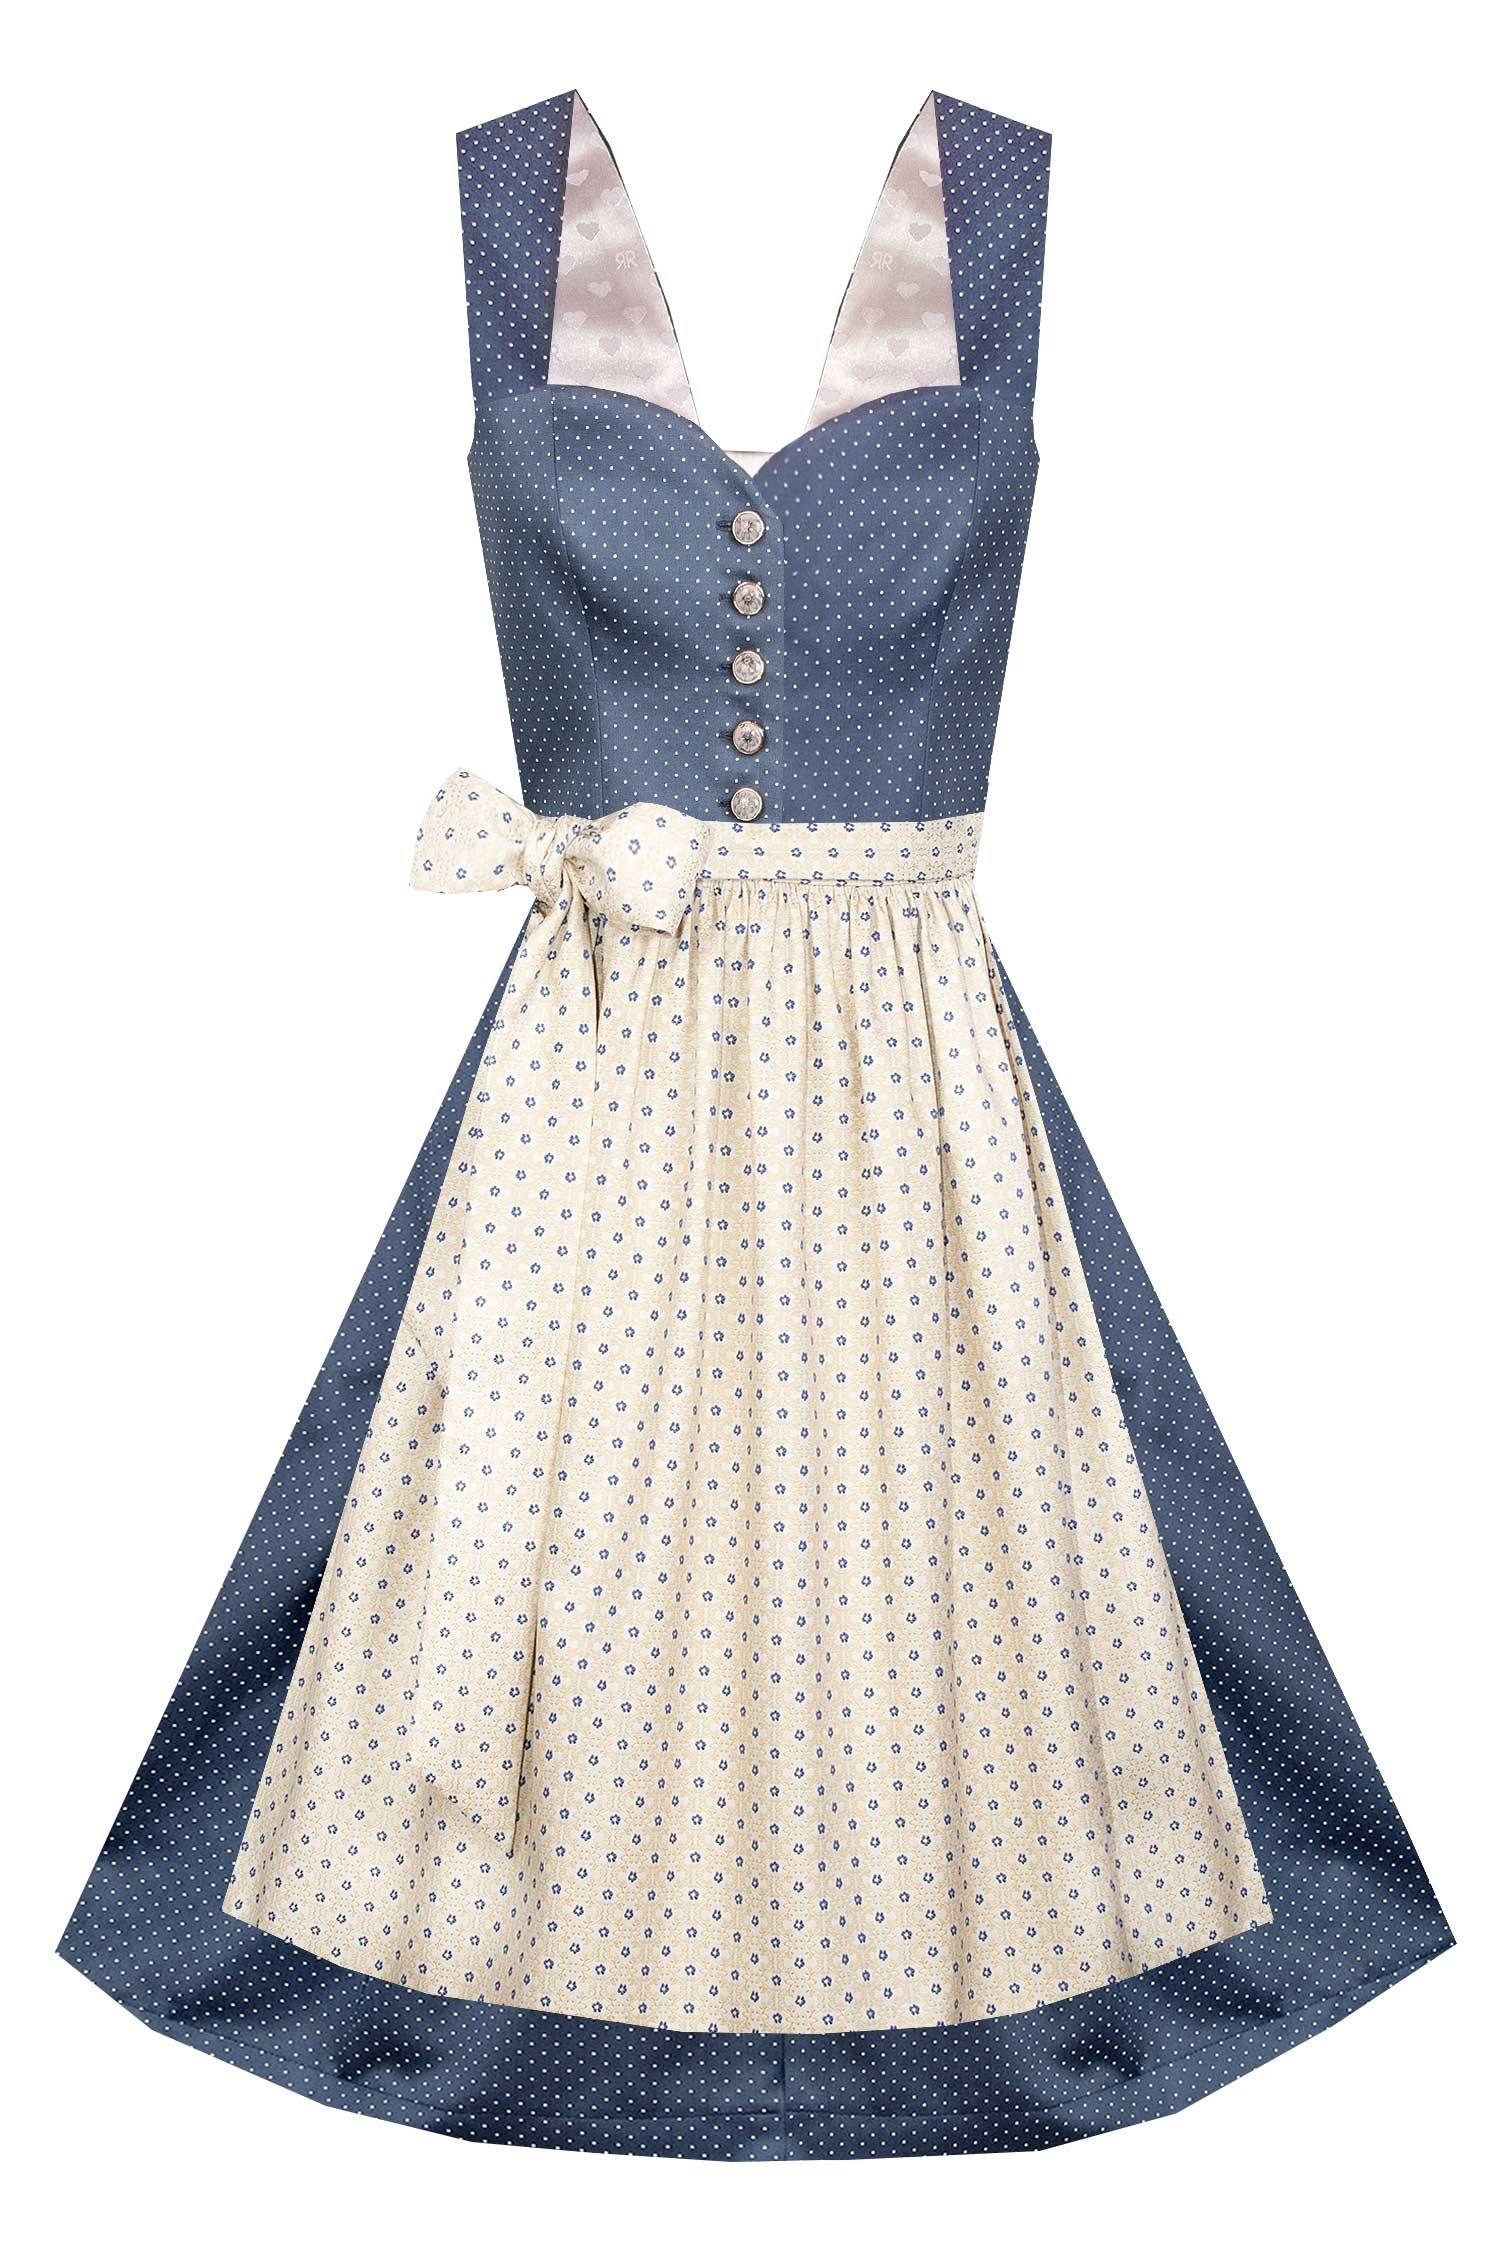 DIRNDLKLEID ROMY MIDNIGHT BLUE